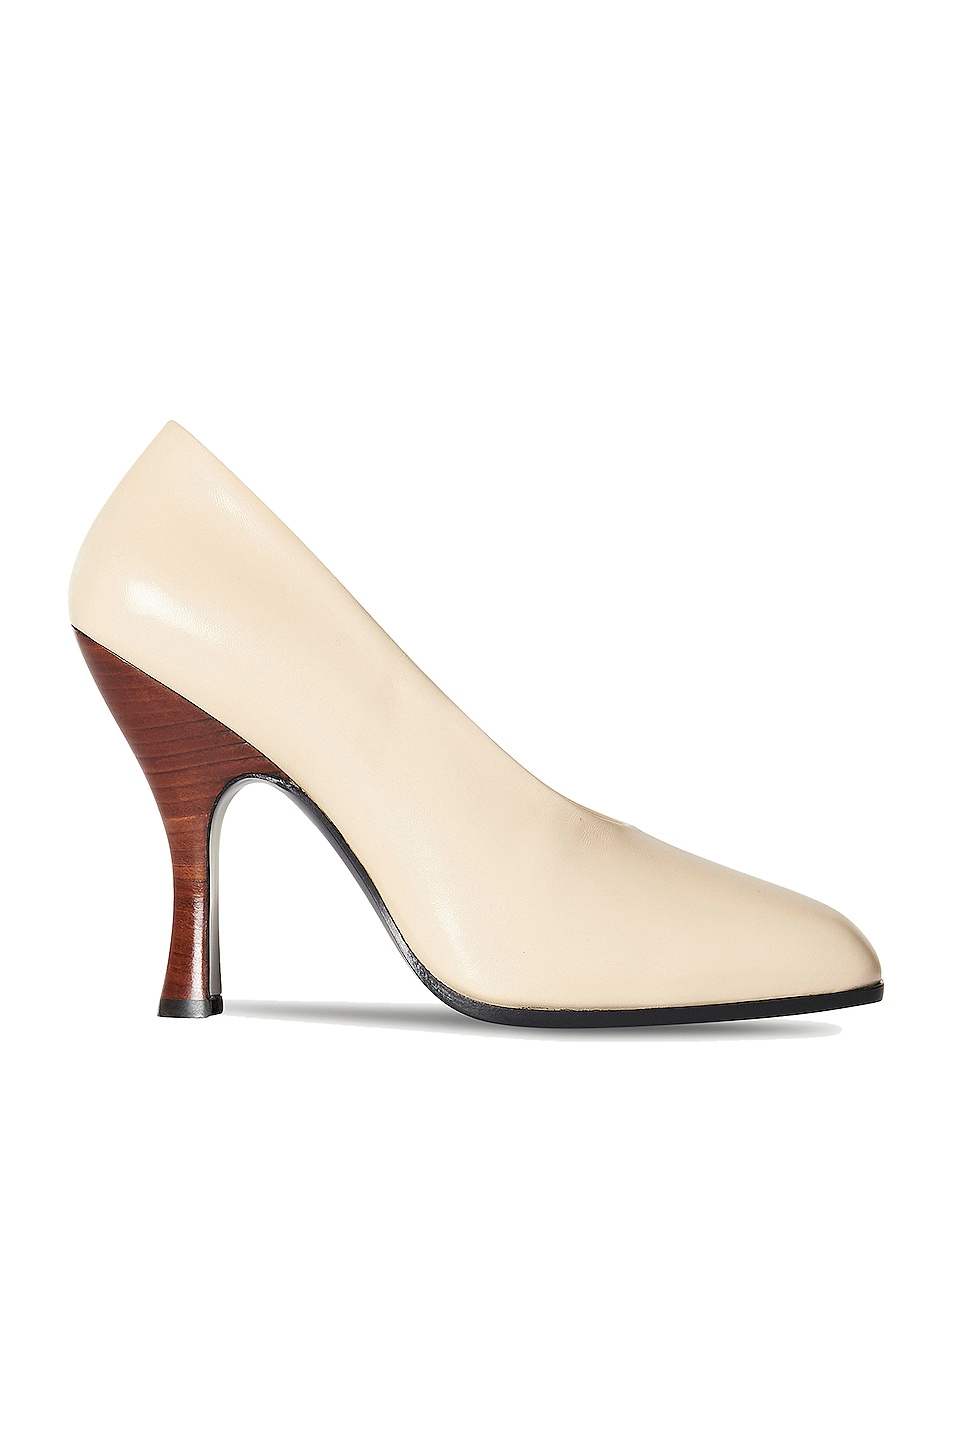 Image 1 of The Row Jade Leather Pumps in Nude